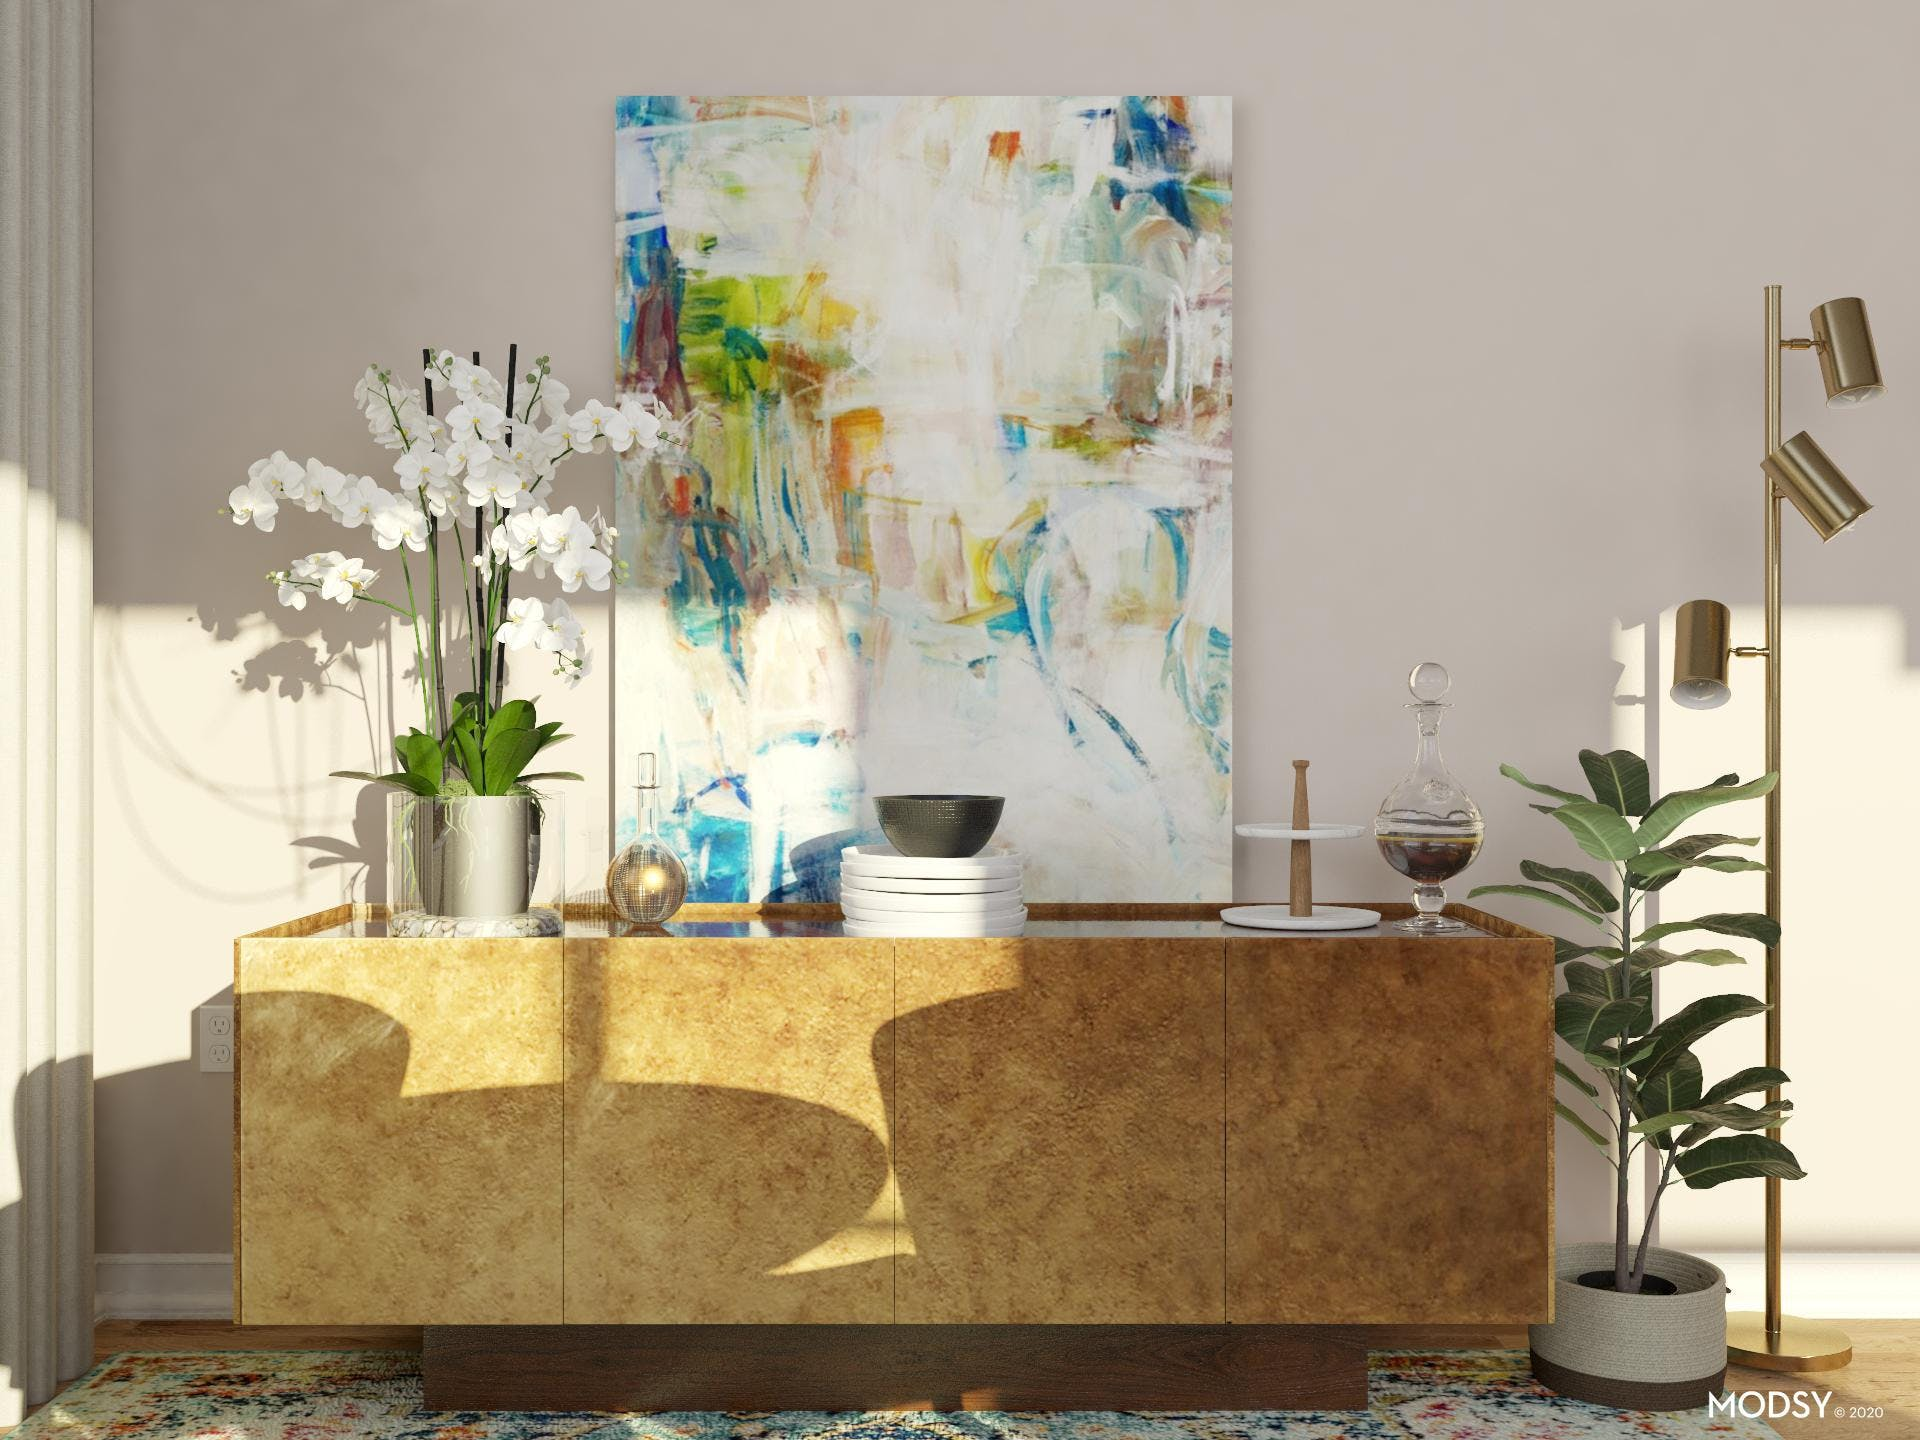 Make the Most of Credenza Styling